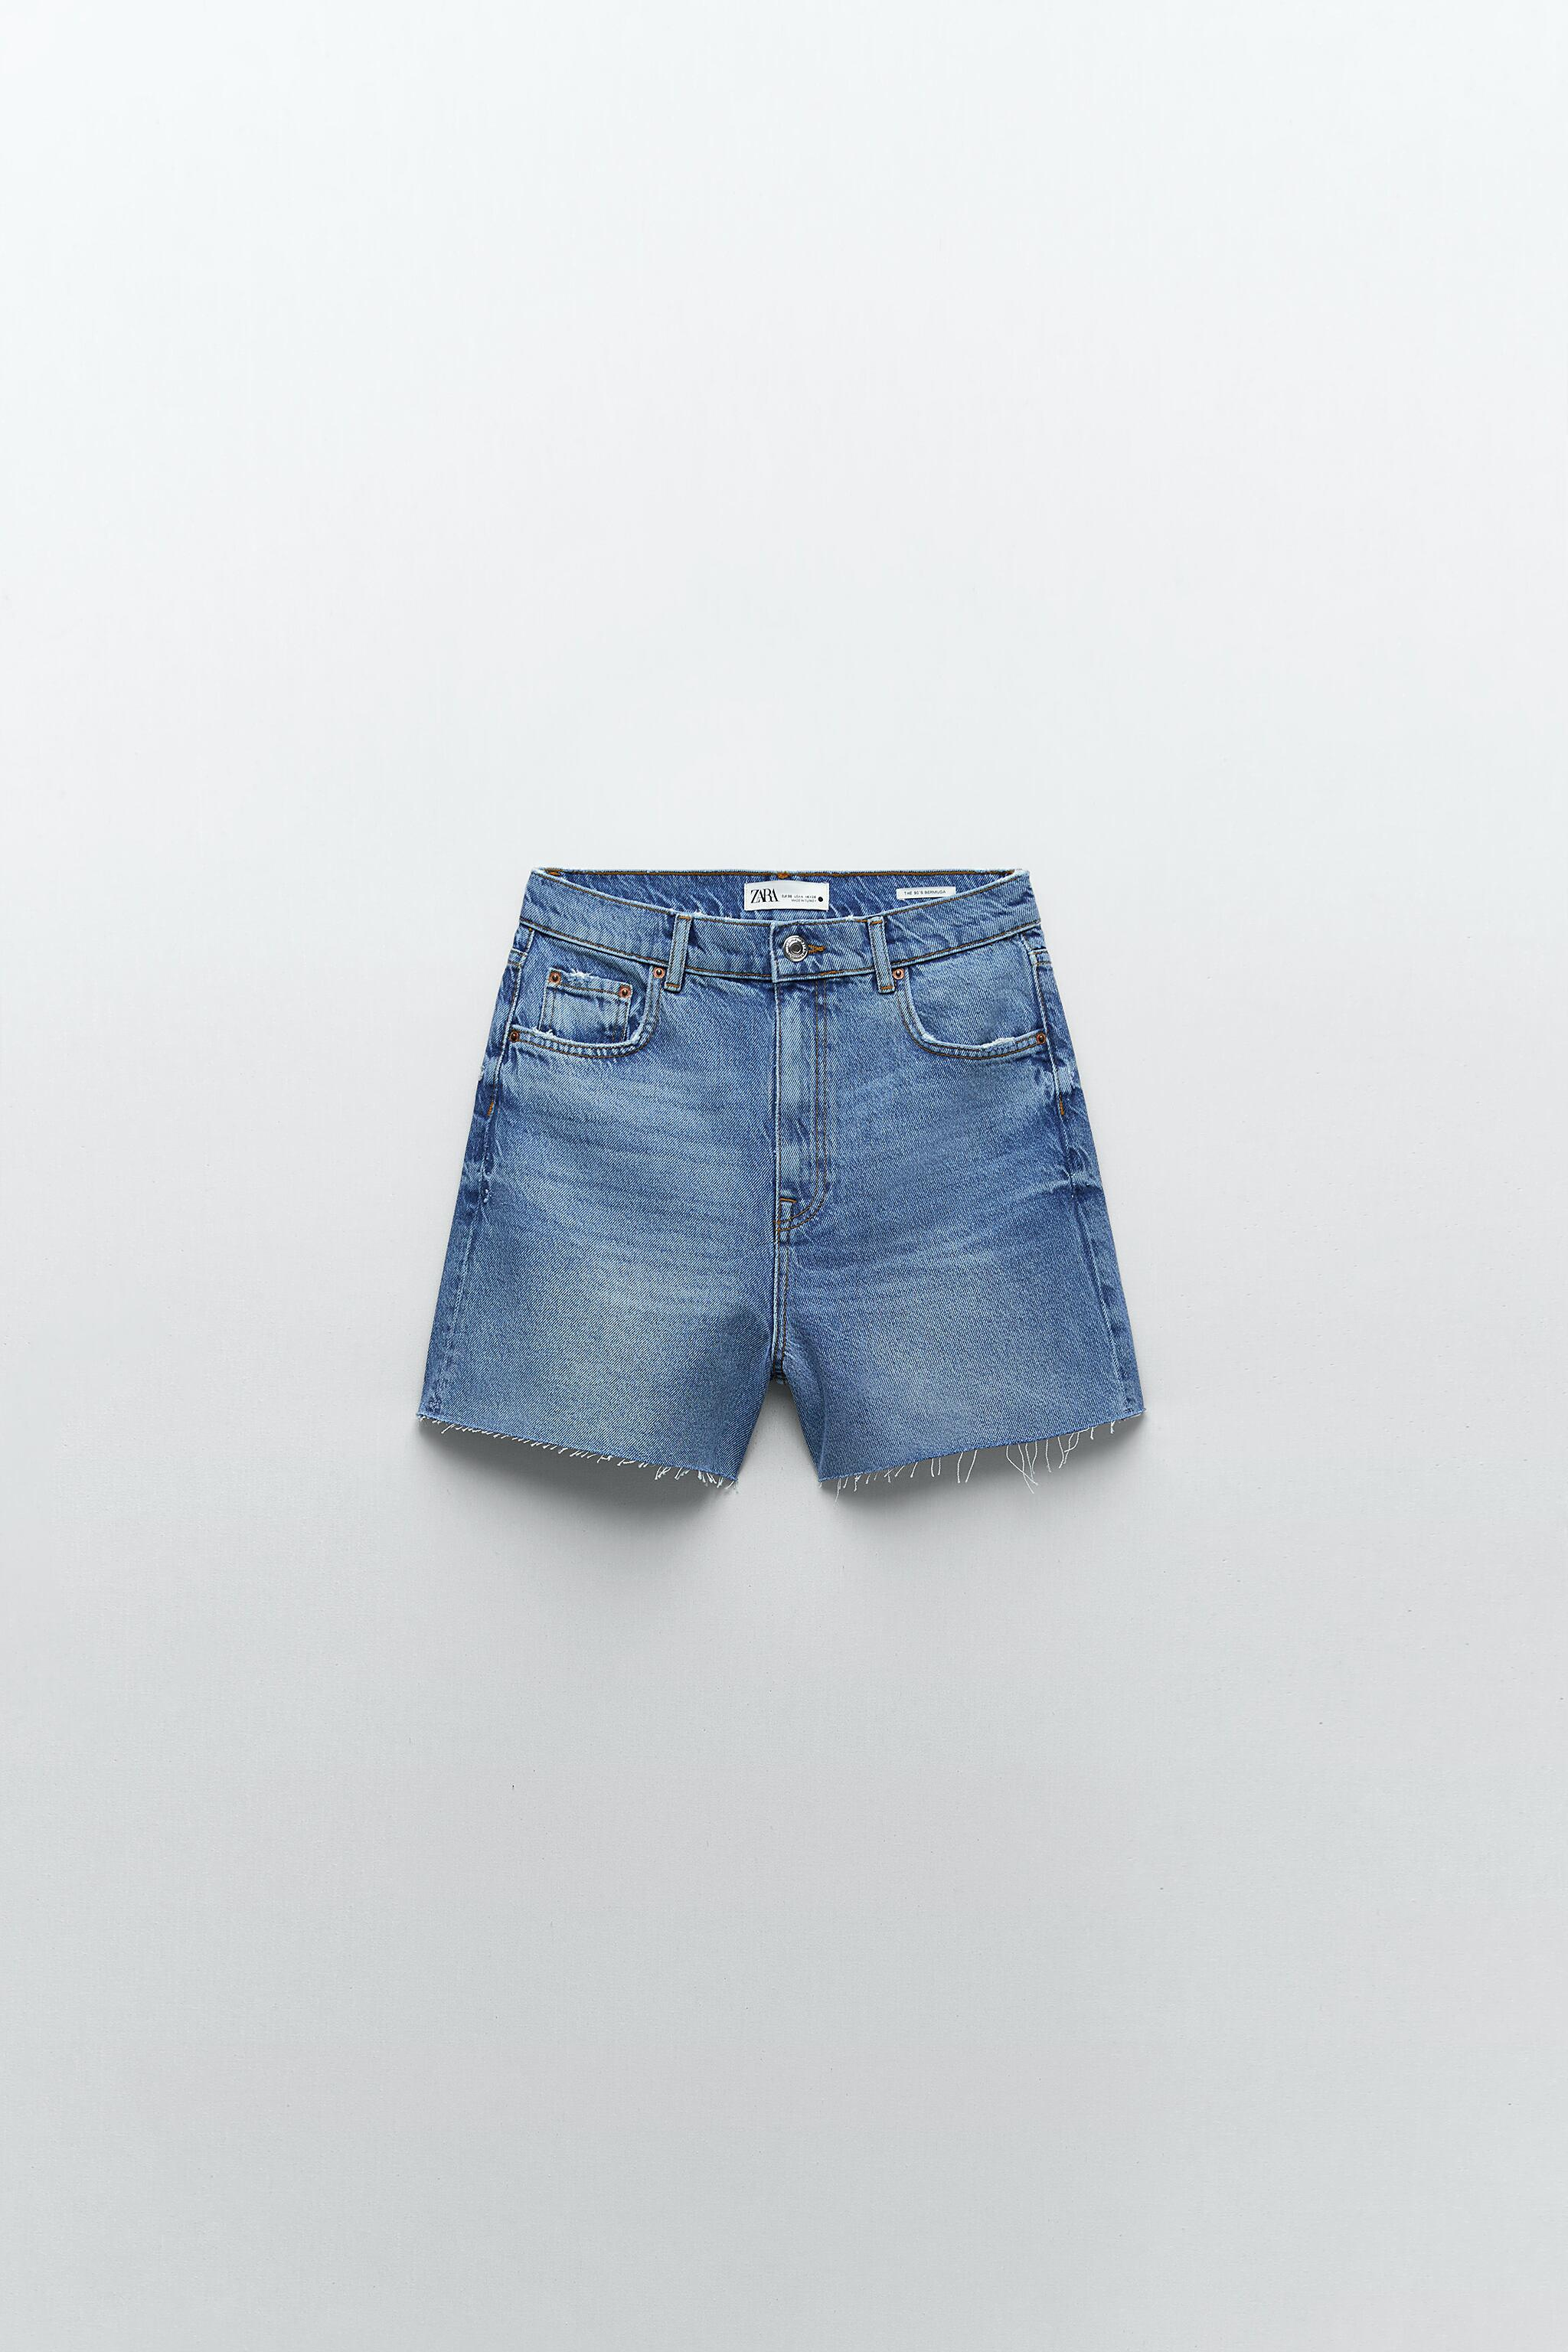 ZW THE '90S SHORTS 1